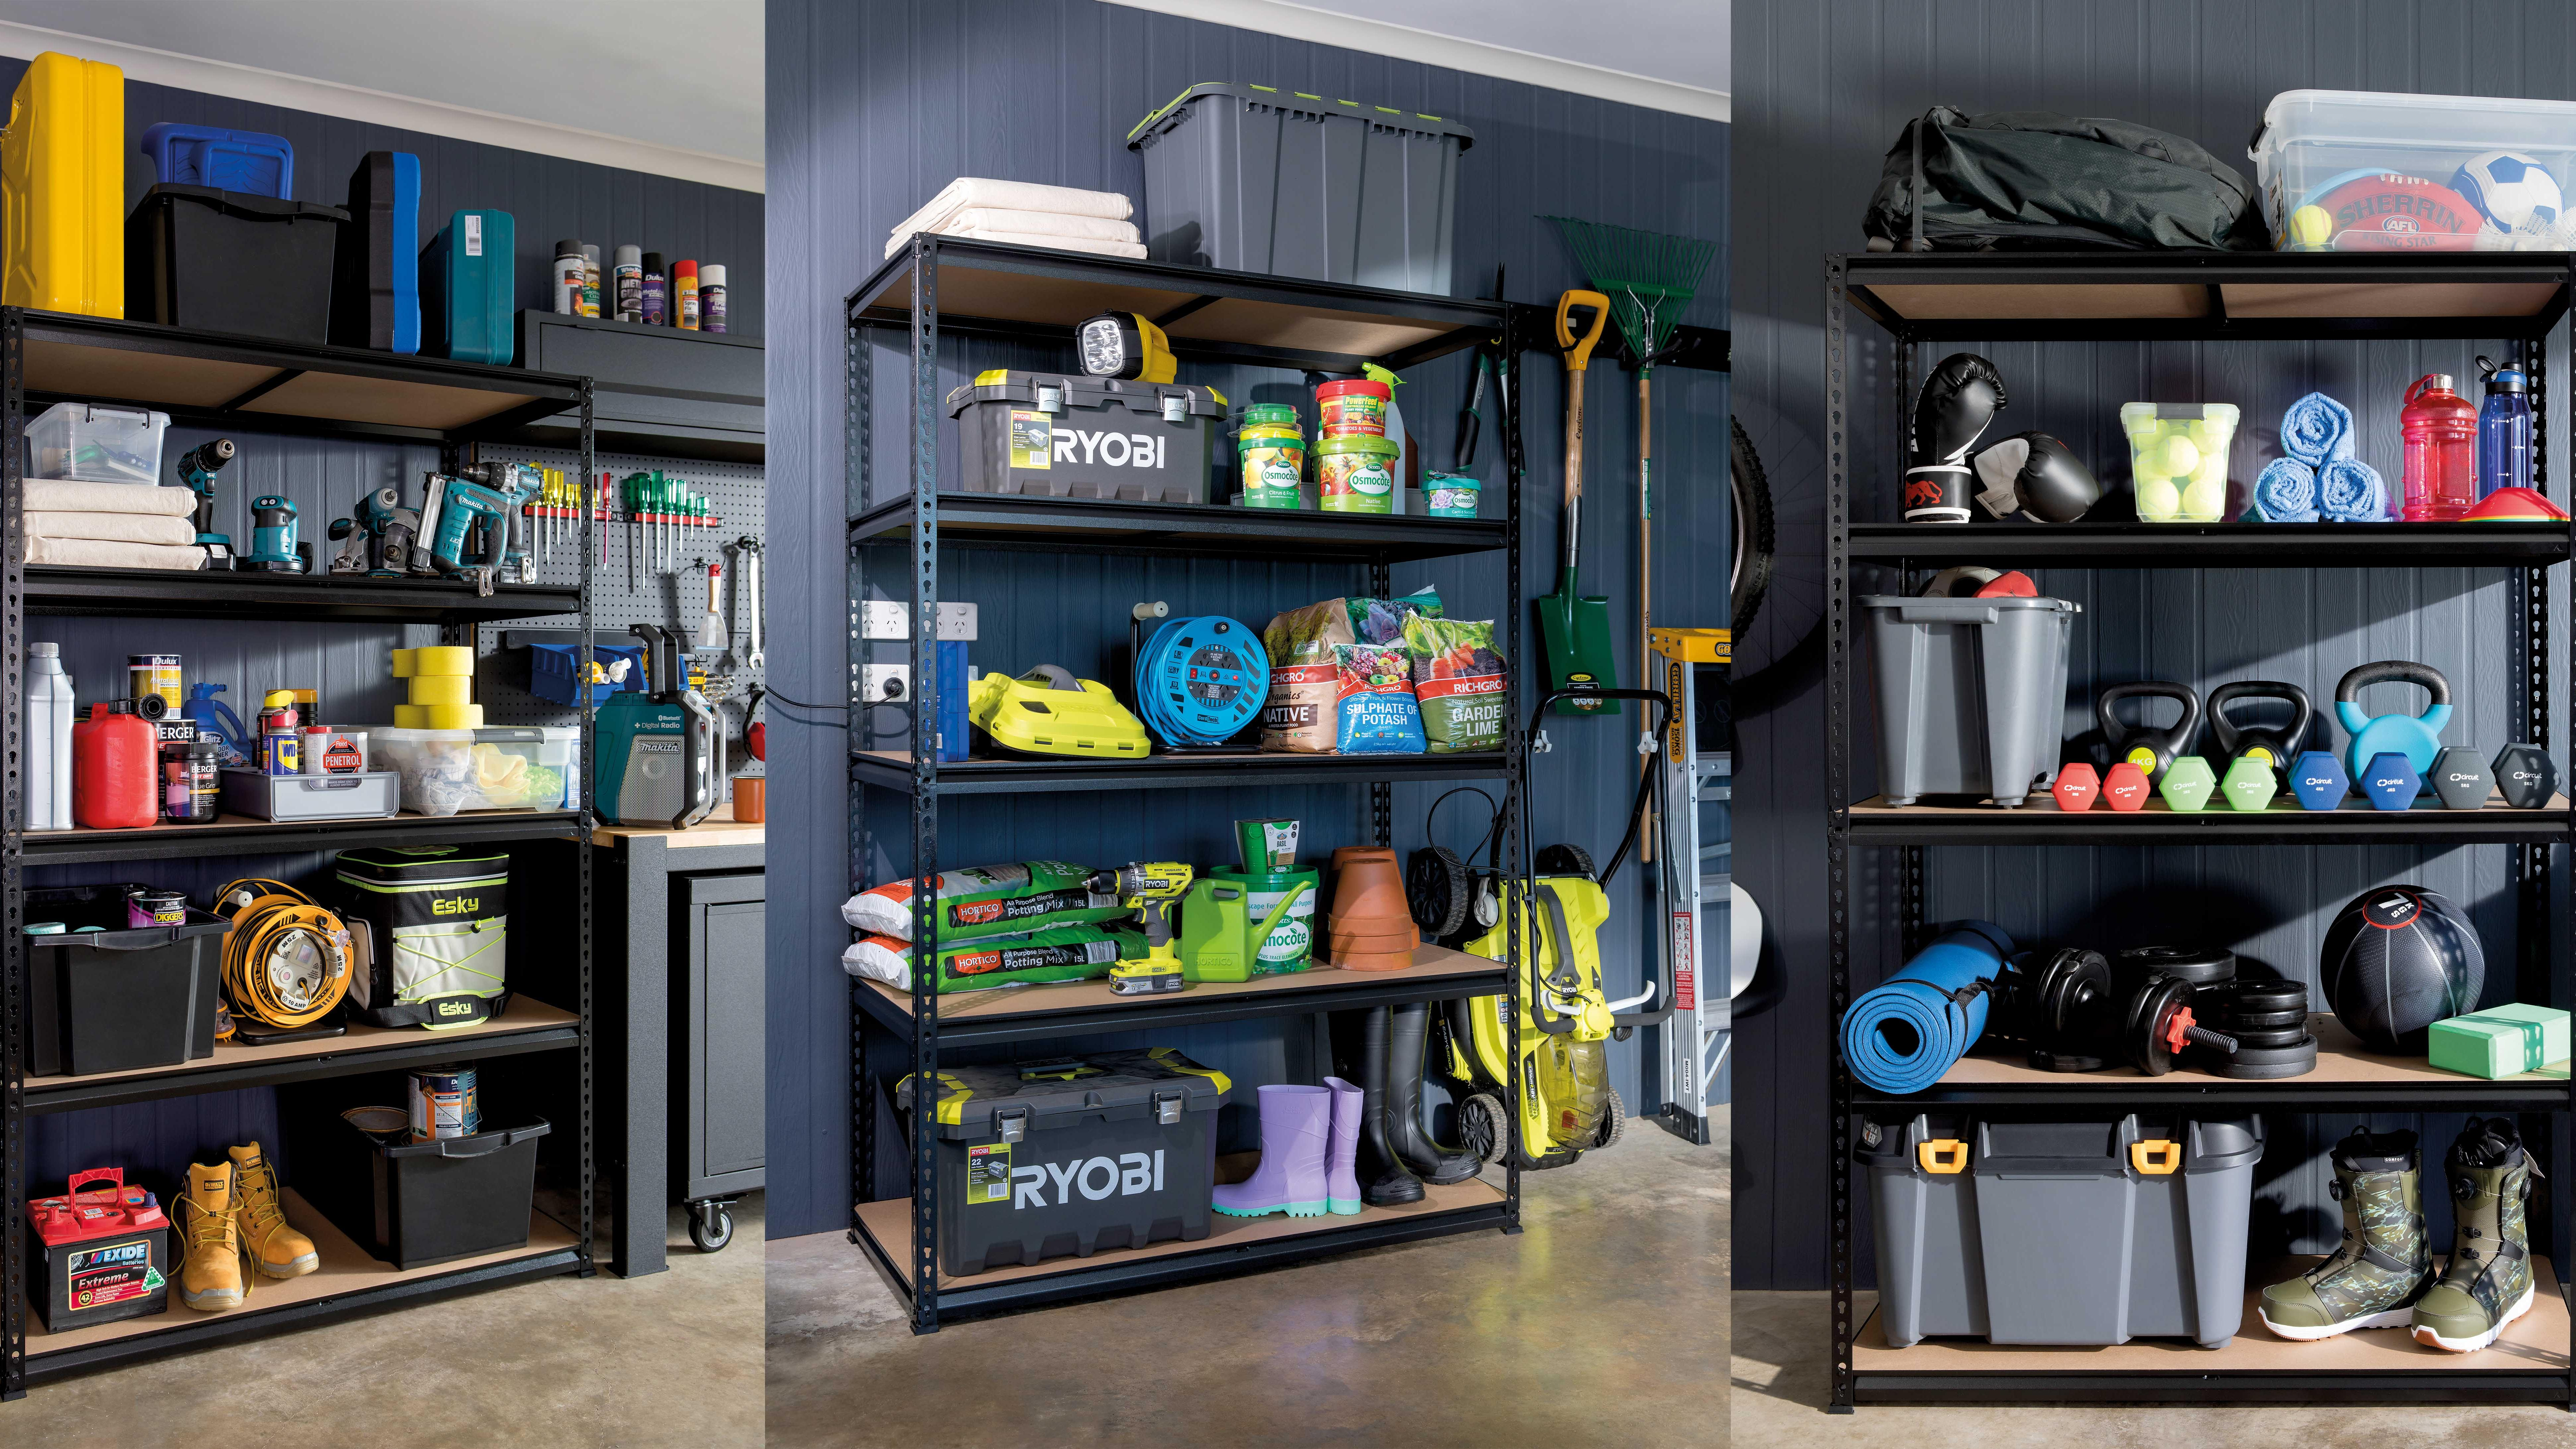 3 garage shelves with different organisations - tools, garden and sports equipment